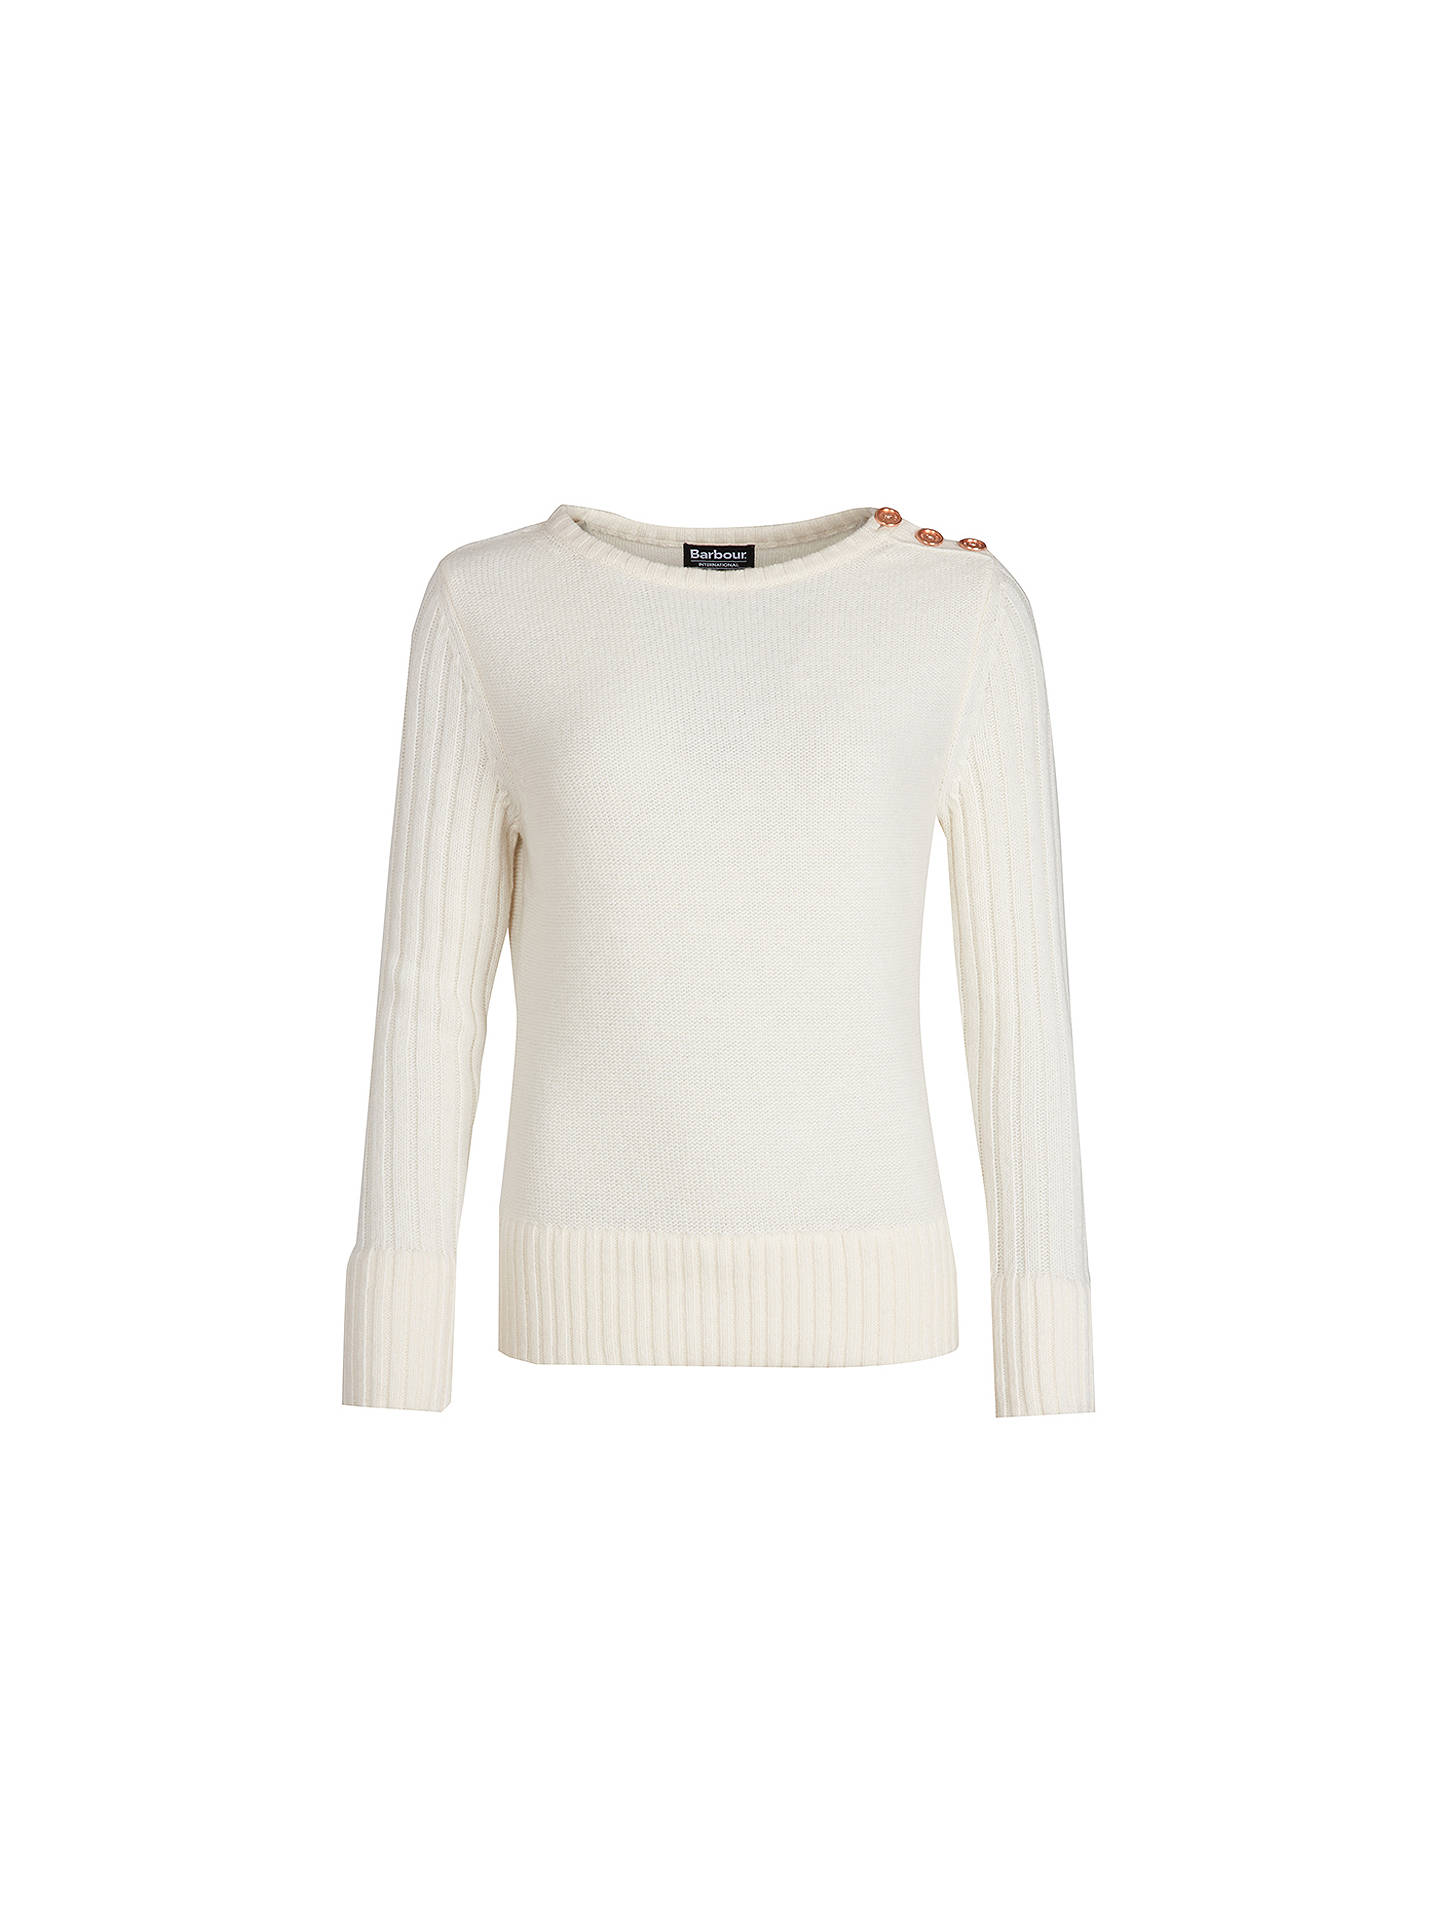 BuyBarbour International Losail Jumper, Off White, 8 Online at johnlewis.com